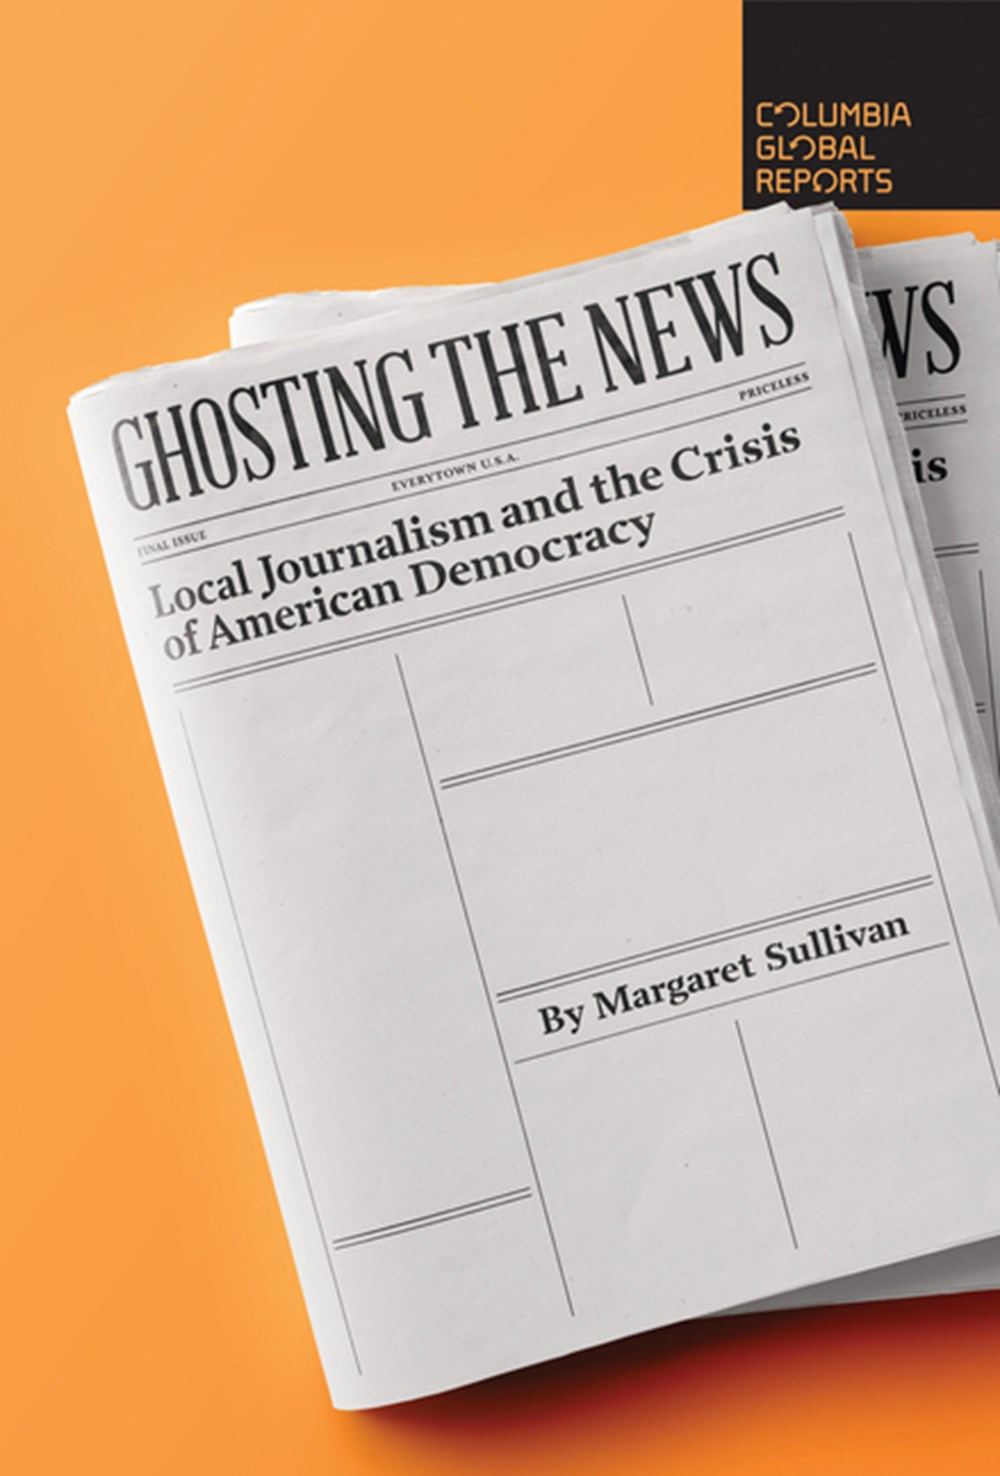 Ghosting the News Local Journalism and the Crisis of American Democracy